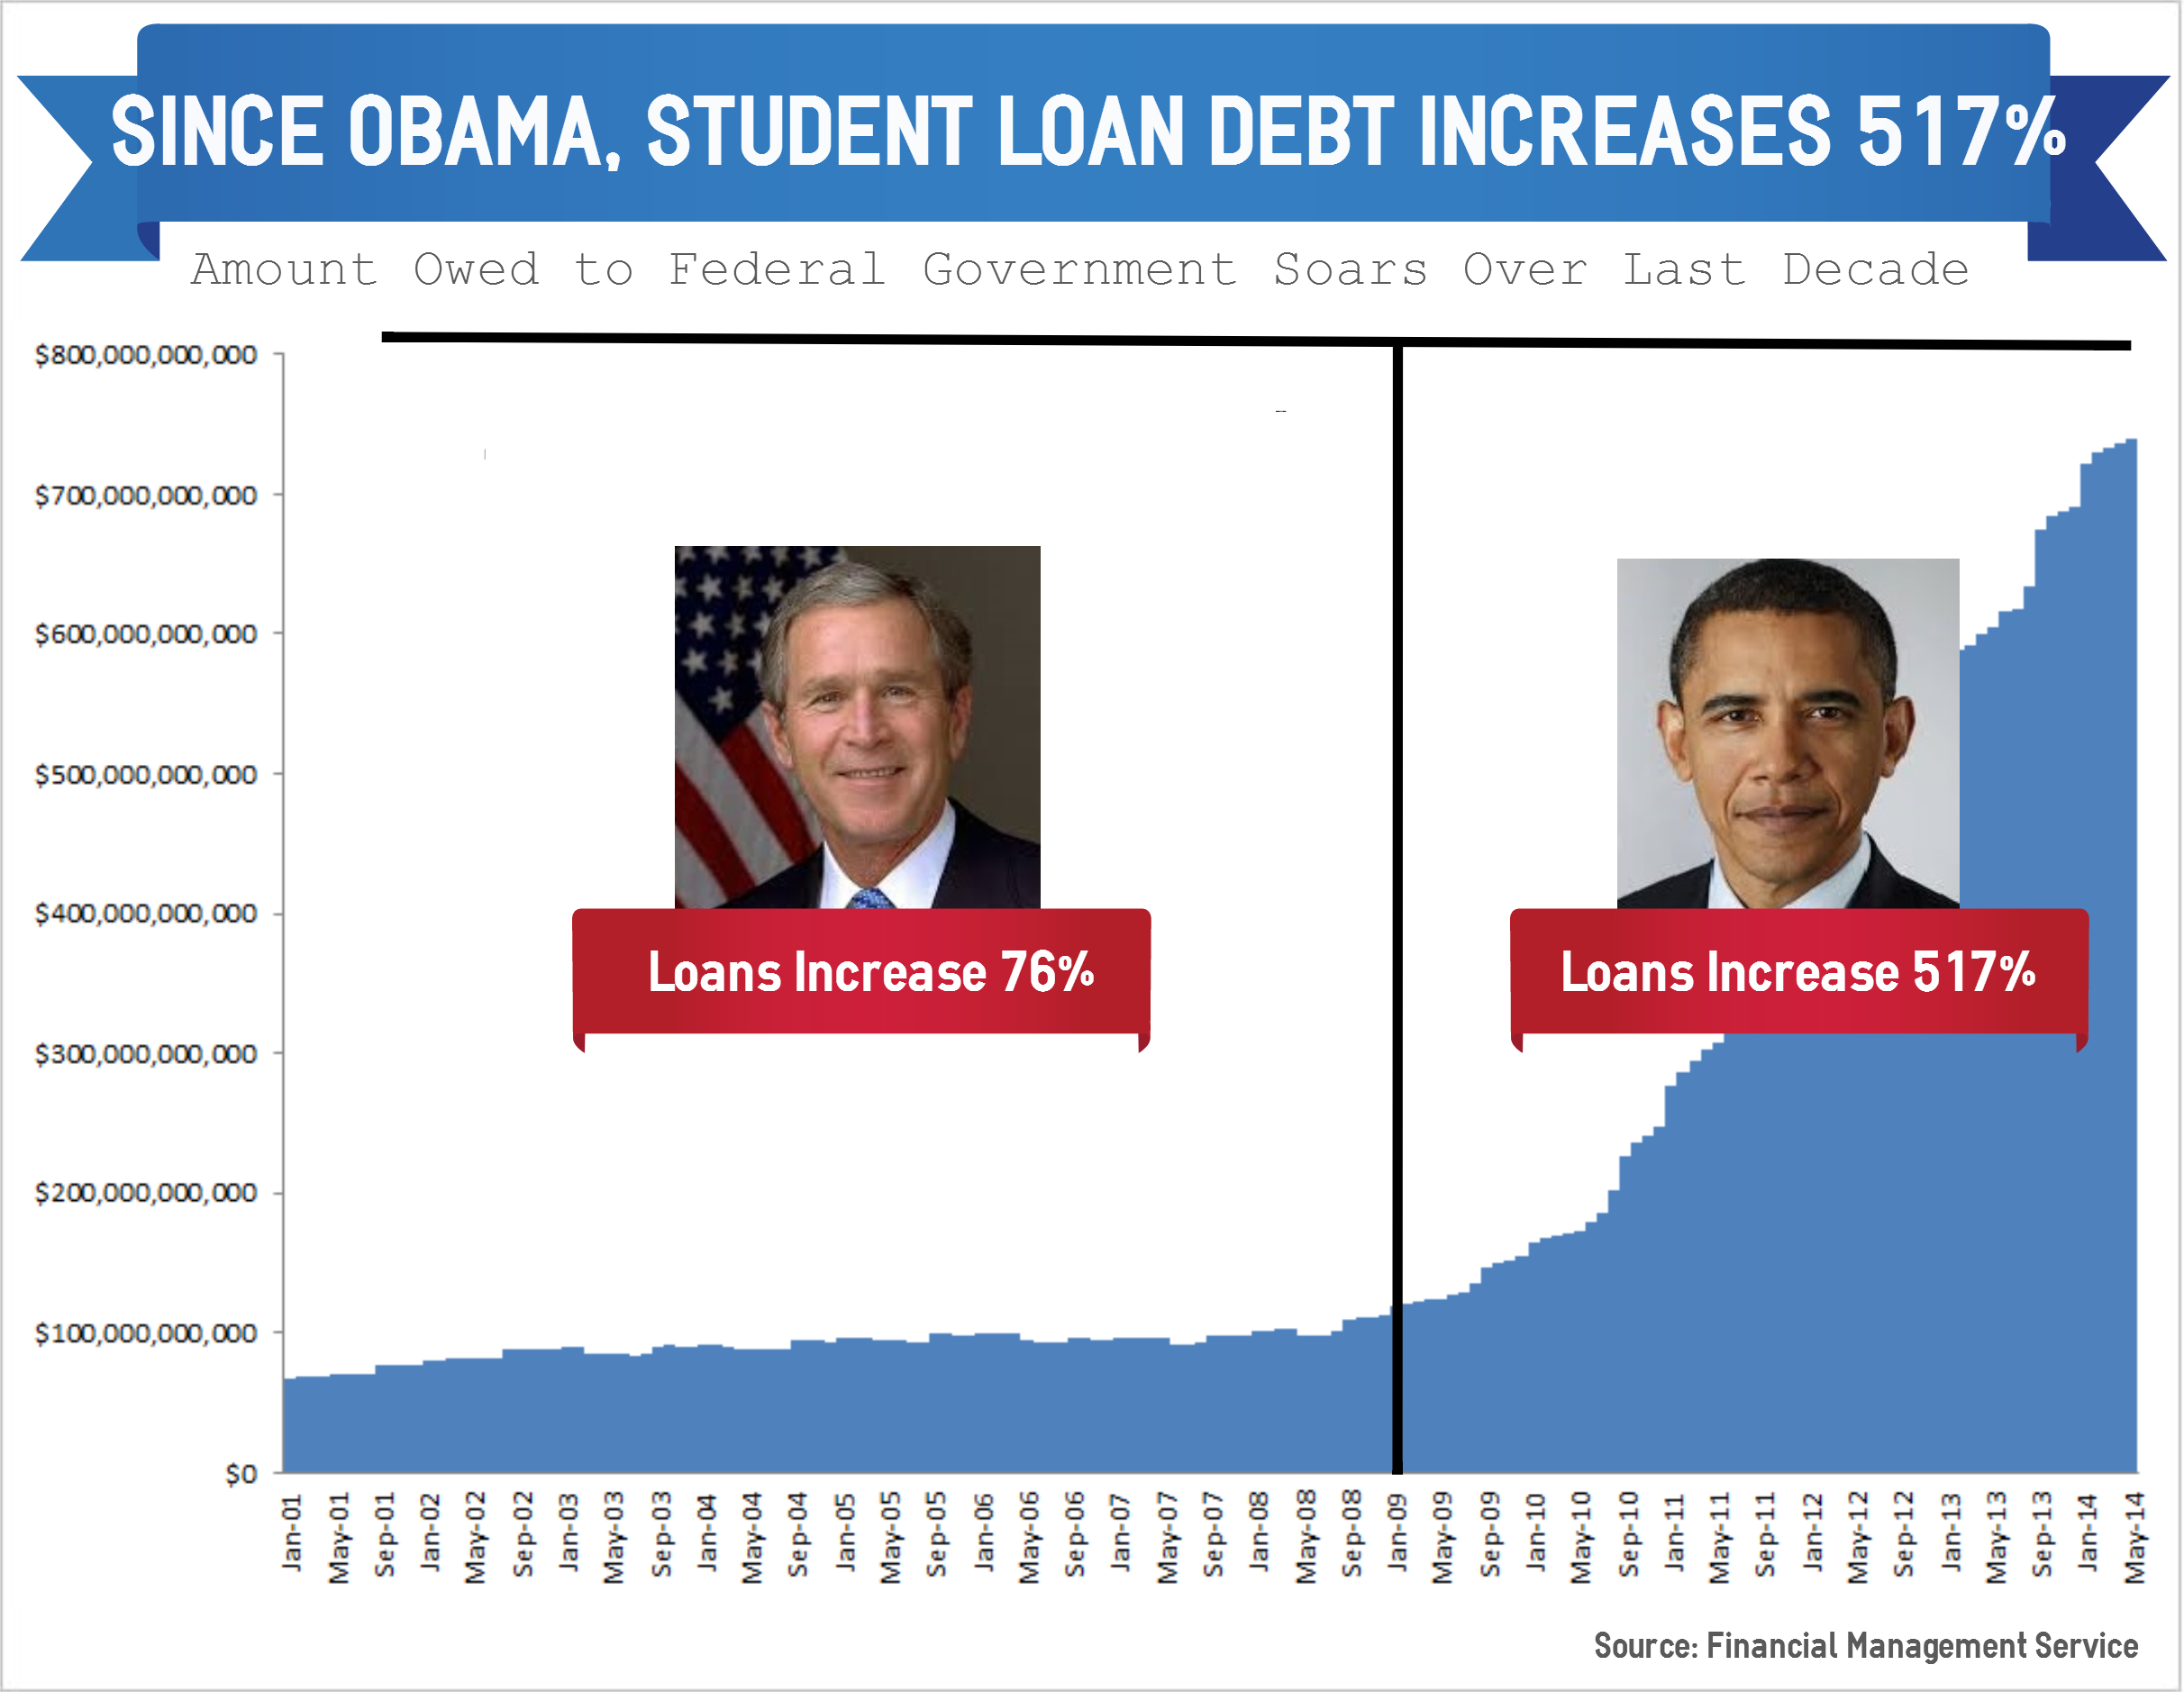 Federal Student Loans In The News